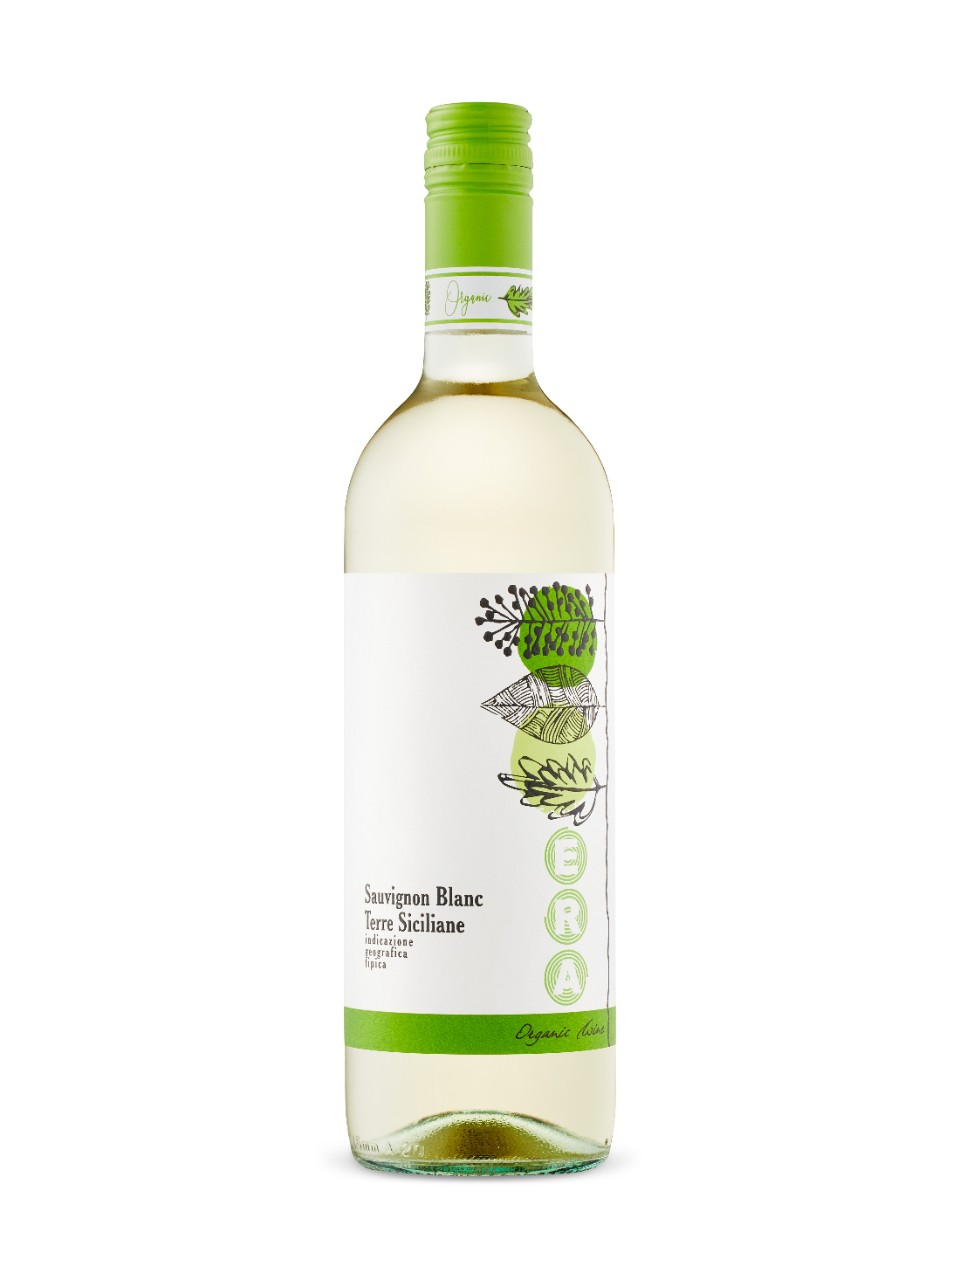 Image for Era Sauvignon Blanc Organic Terre Siciliane IGT from LCBO